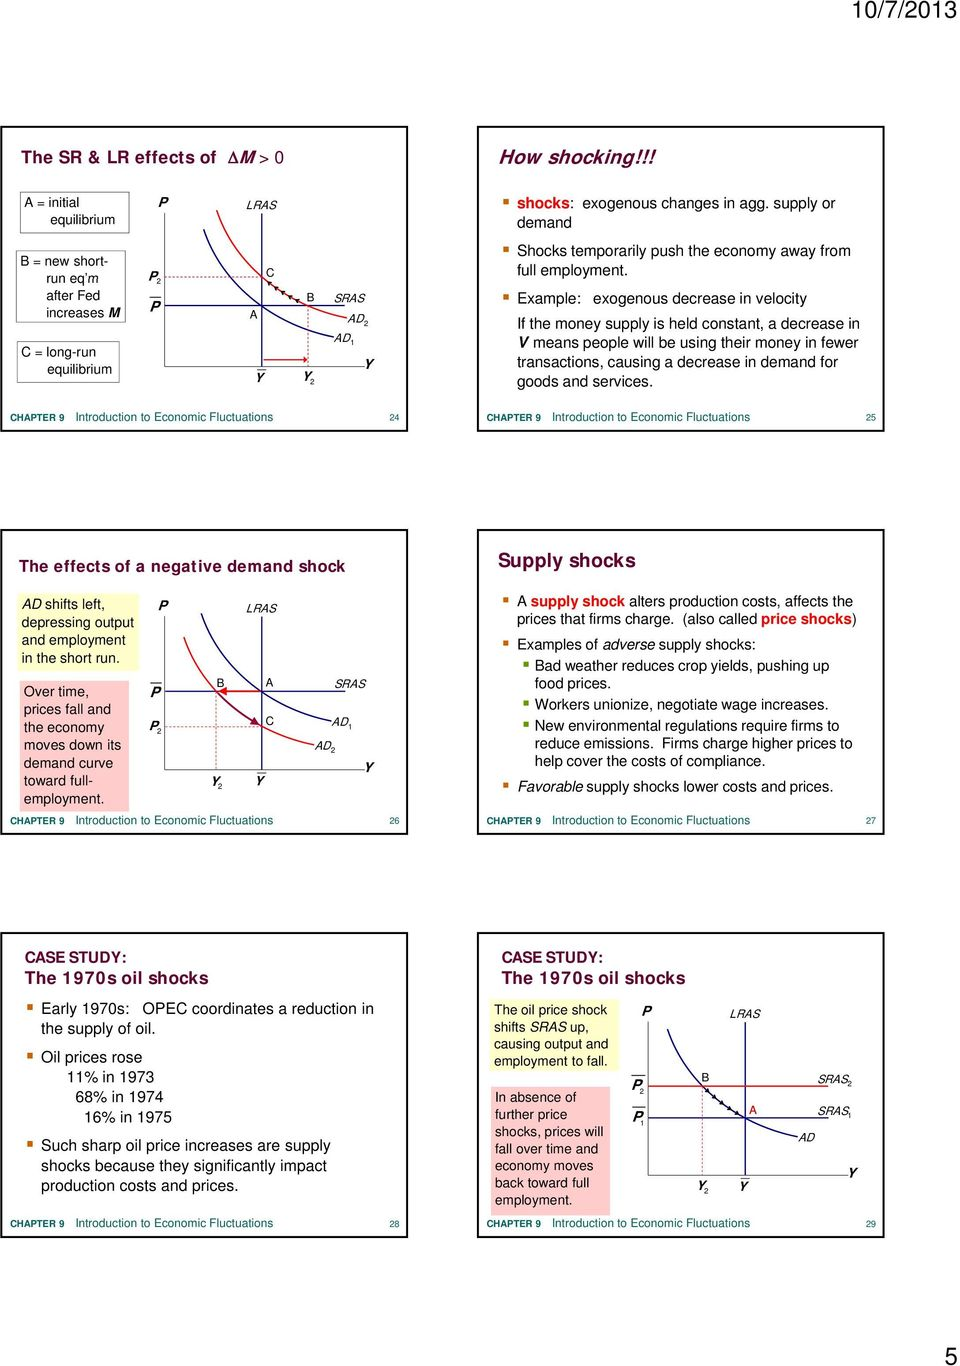 Example: exogenous decrease in velocity If the money supply is held constant, a decrease in V means people will be using their money in fewer transactions, causing a decrease in demand for goods and